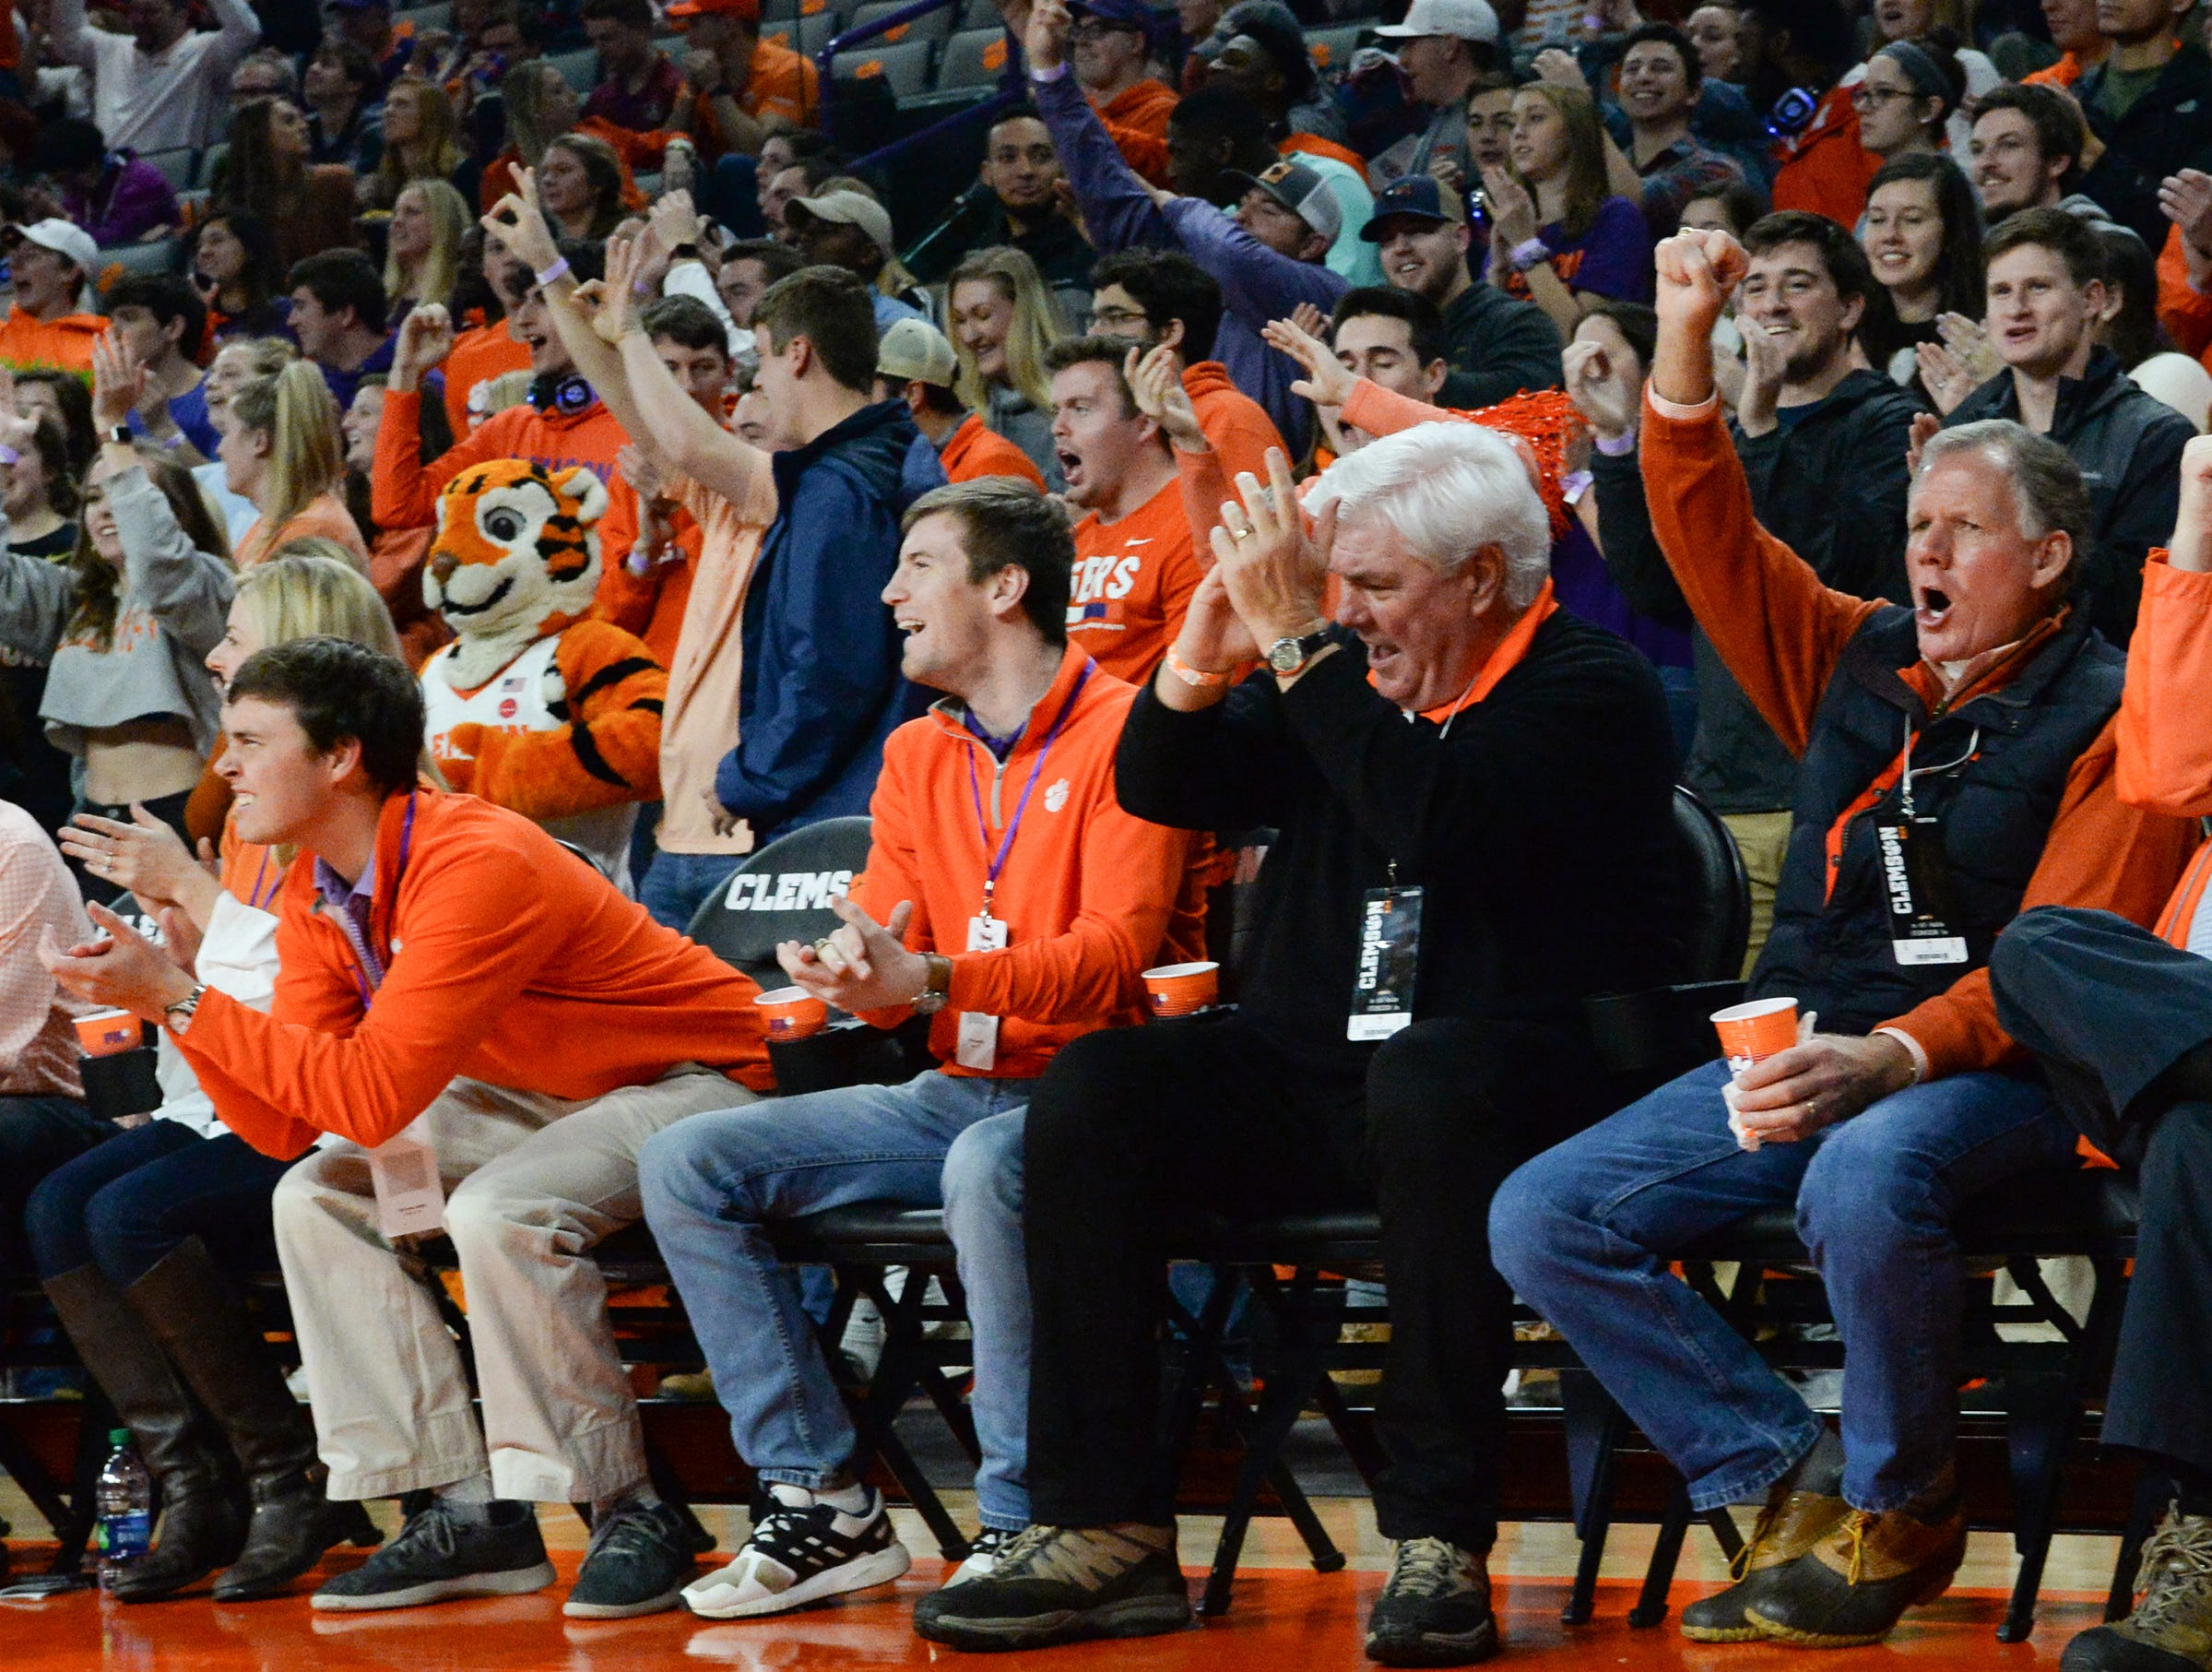 Fans cheer after Clemson scores during the first half at Littlejohn Coliseum in Clemson Tuesday, February 19, 2019.